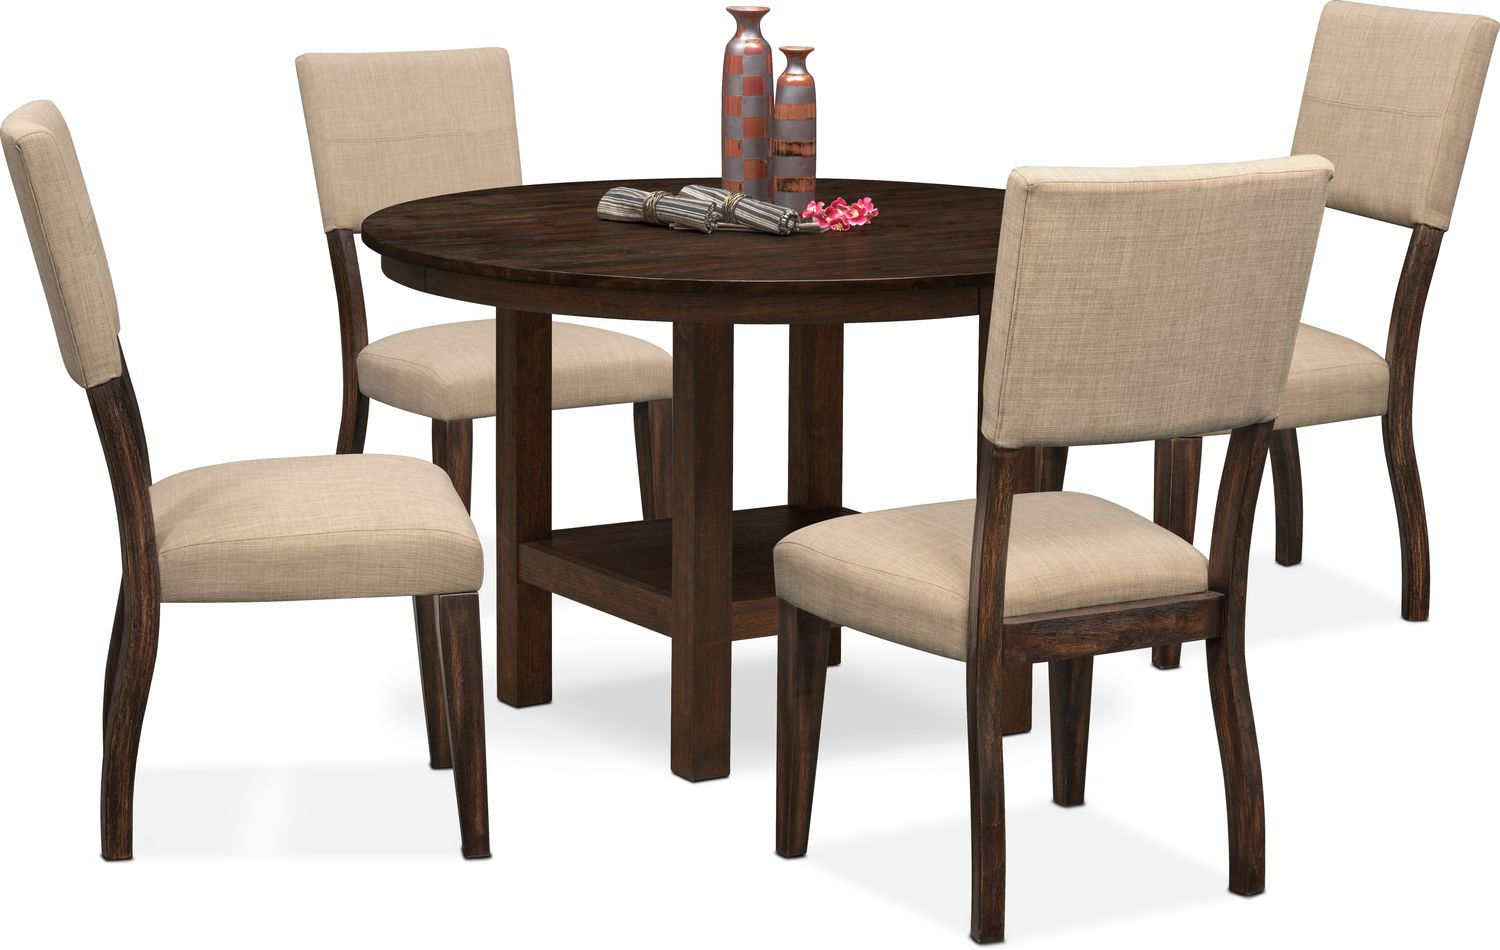 Dining Room Furniture - Tribeca Round Dining Table and 4 Upholstered Side Chairs